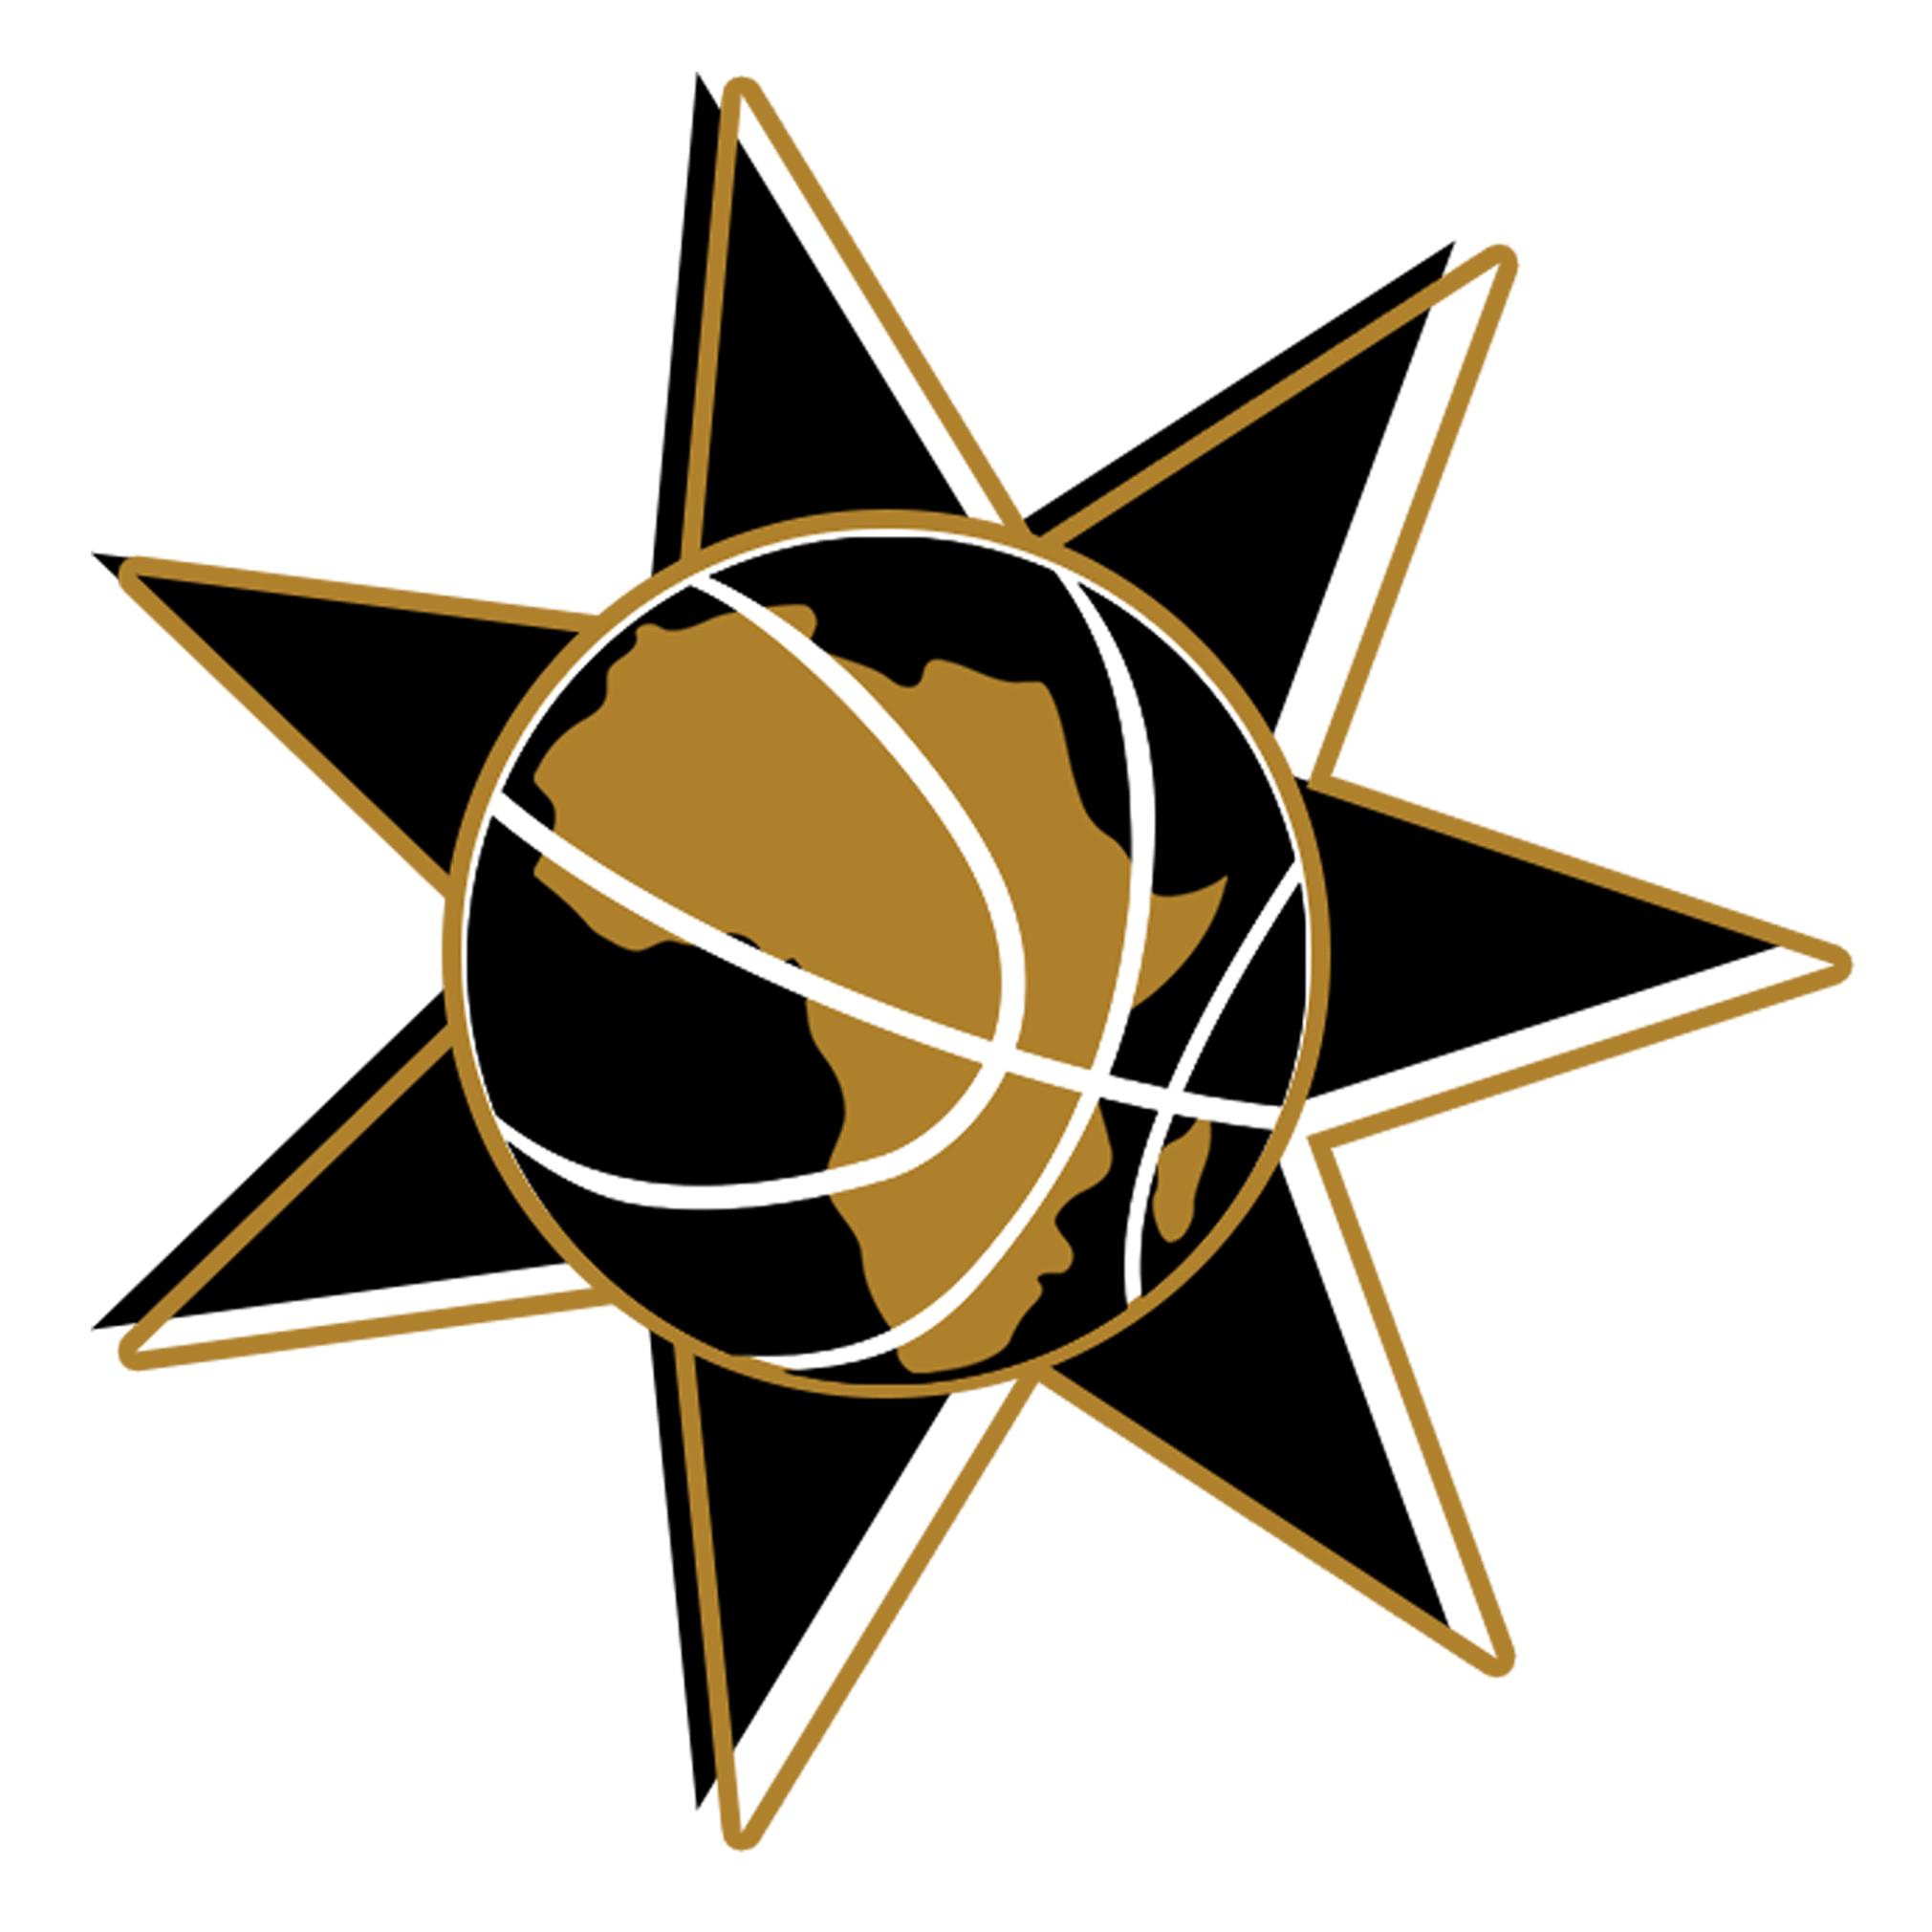 International Basketball Federation (FIBA) - FIBA basketball